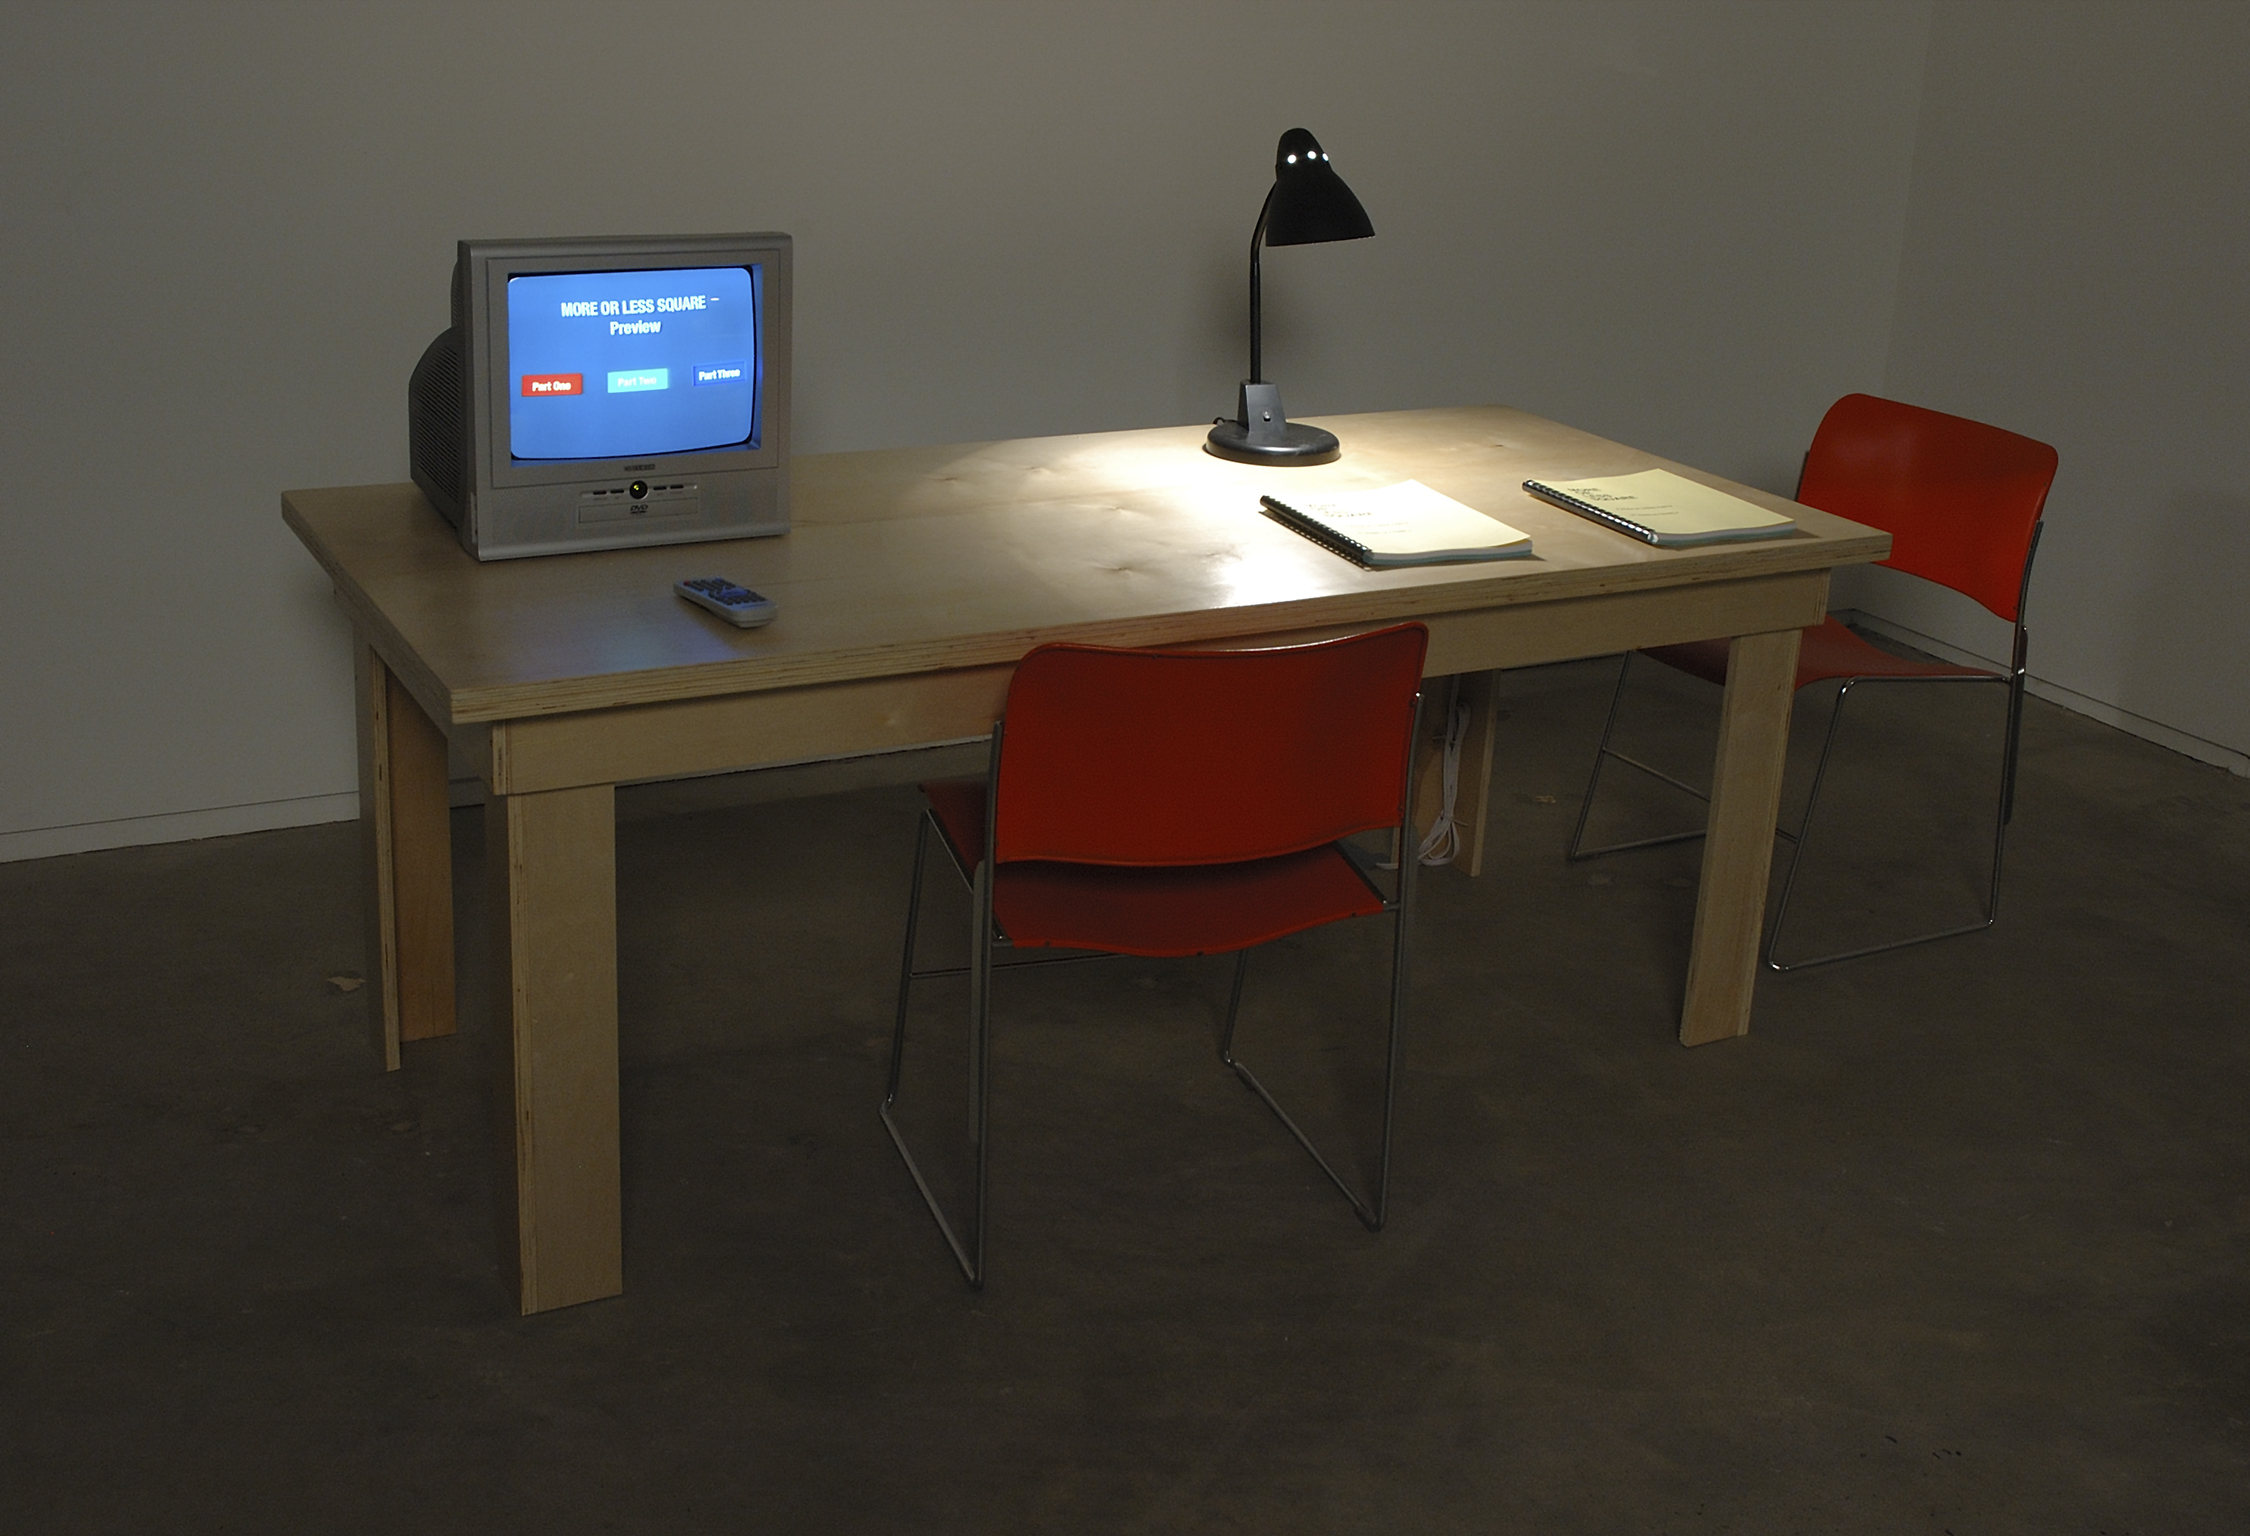 Isabelle Pauwels, Untitled, 2006, curtis combination DVD player, monitor with remote control, introductions DVD, table, 2 copies of More or Less Square: A Book in Three Parts, lamp​​, dimensions variable by